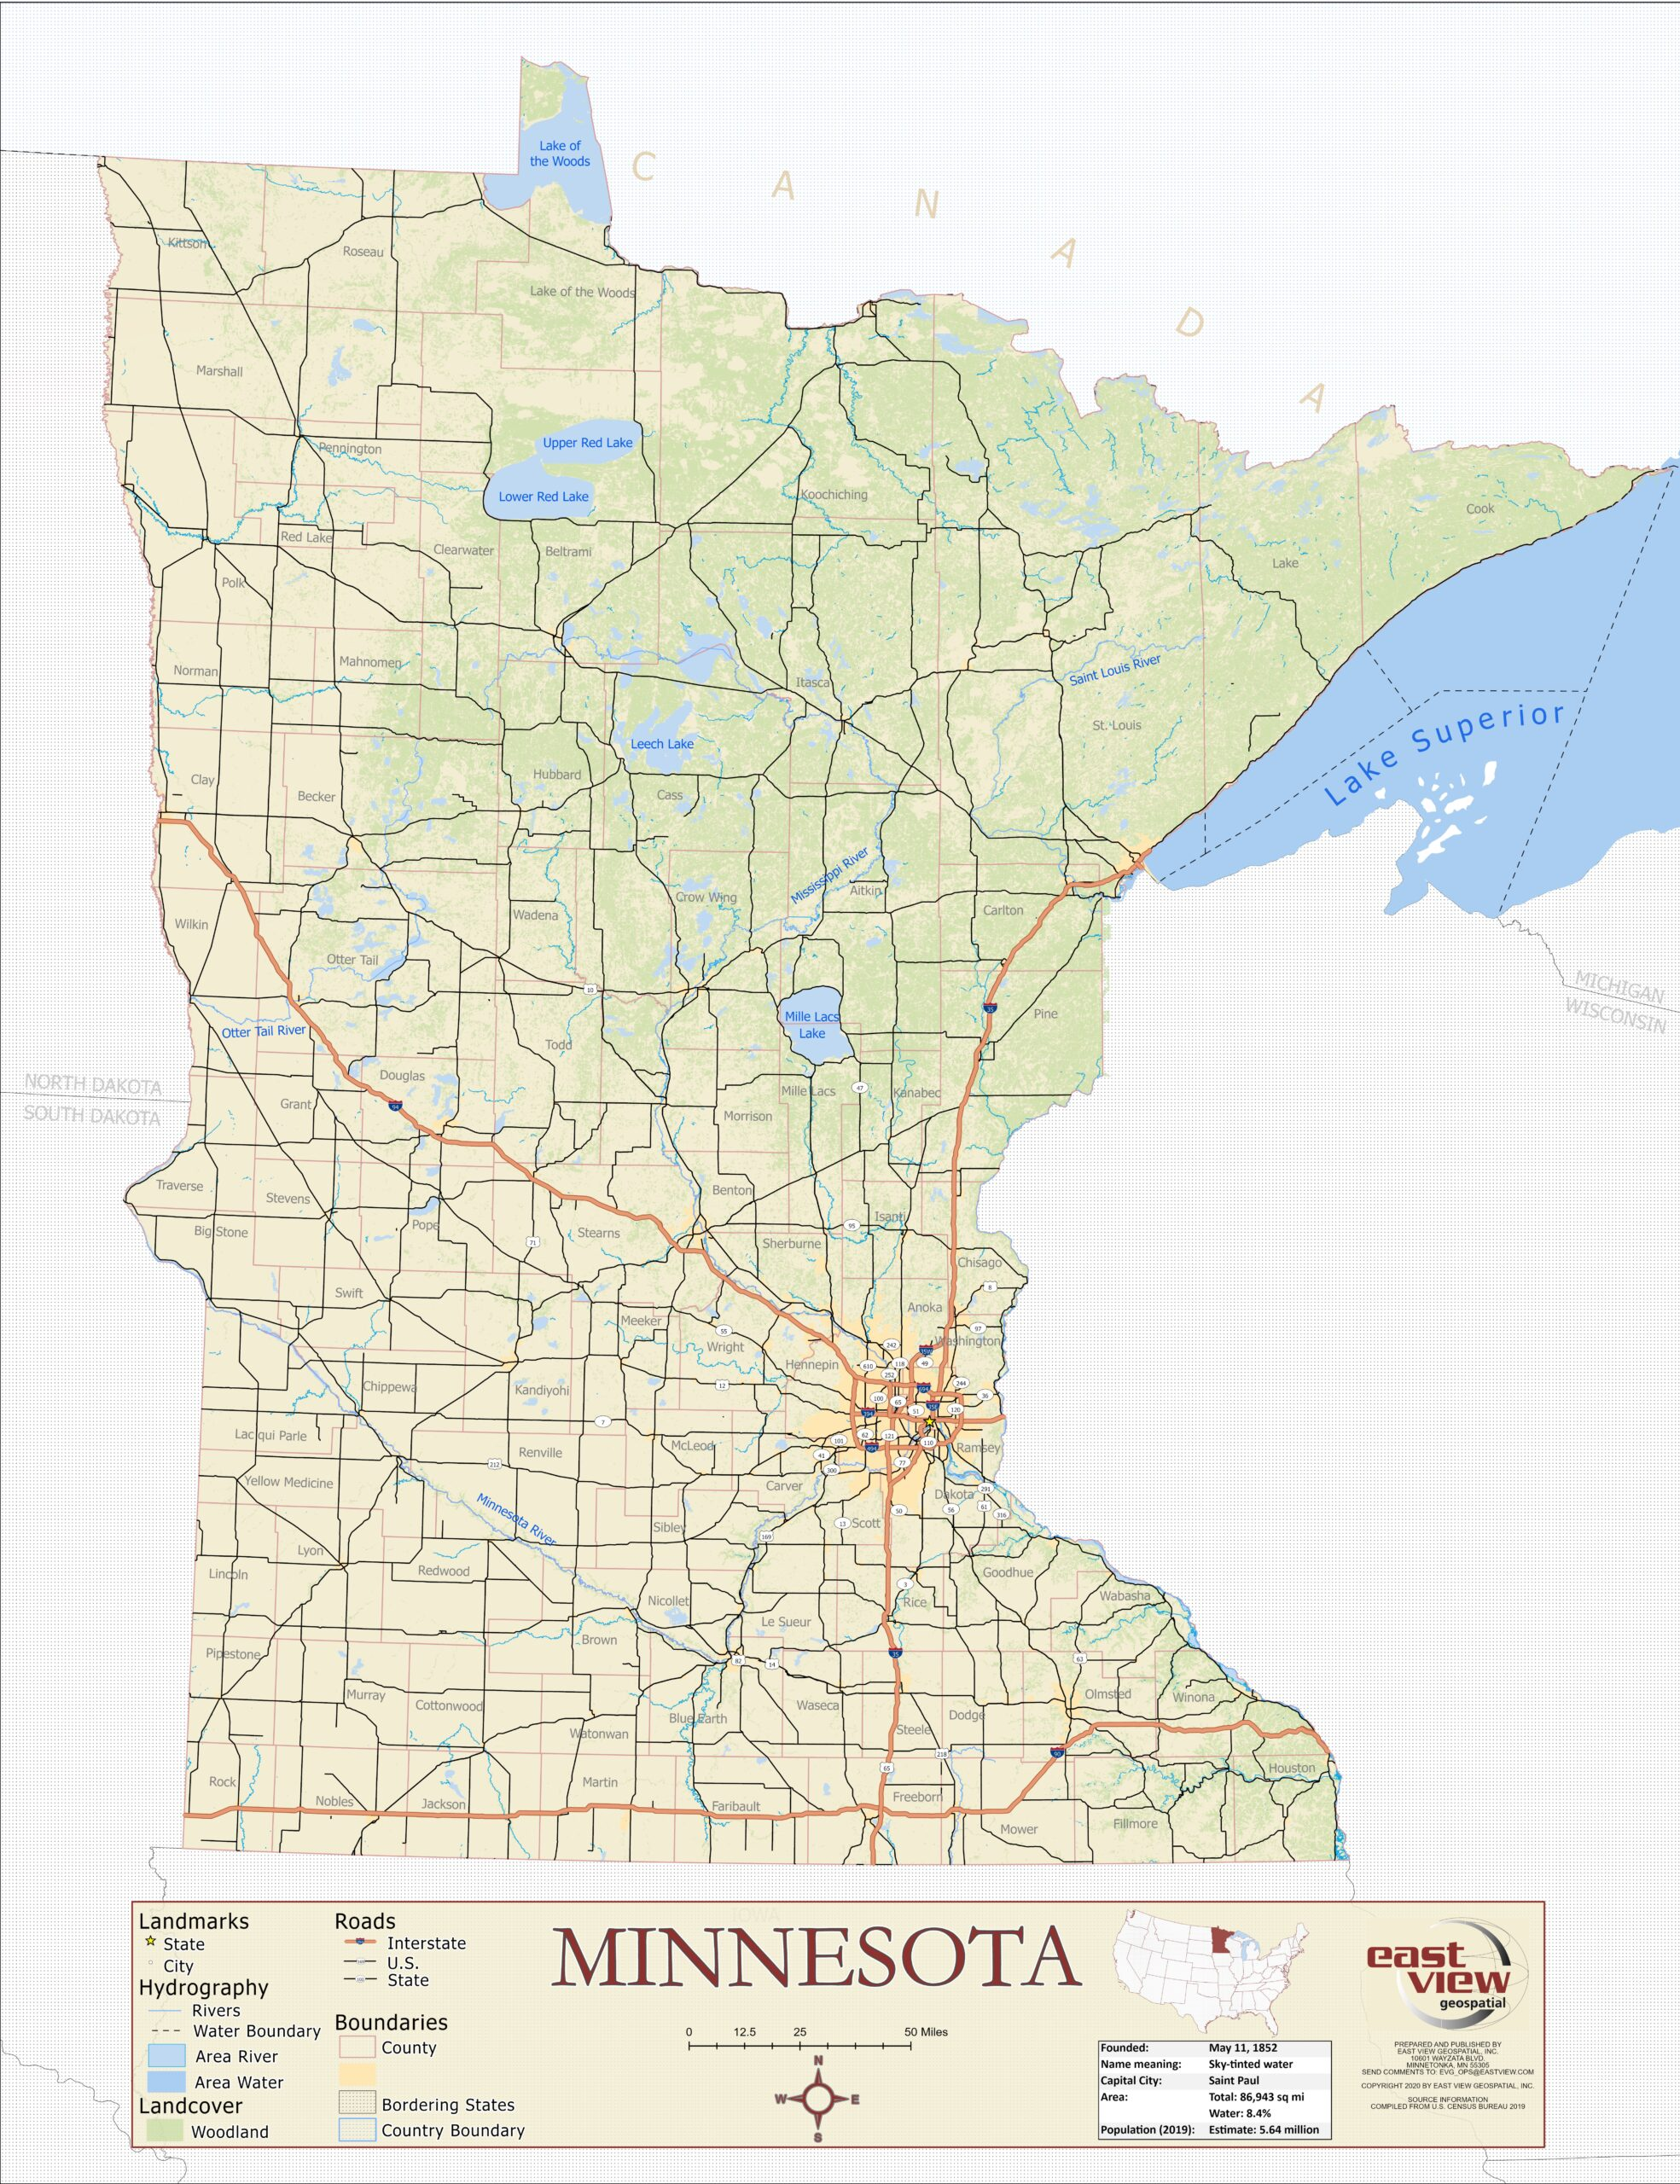 Custom produced thematic map of Minnesota